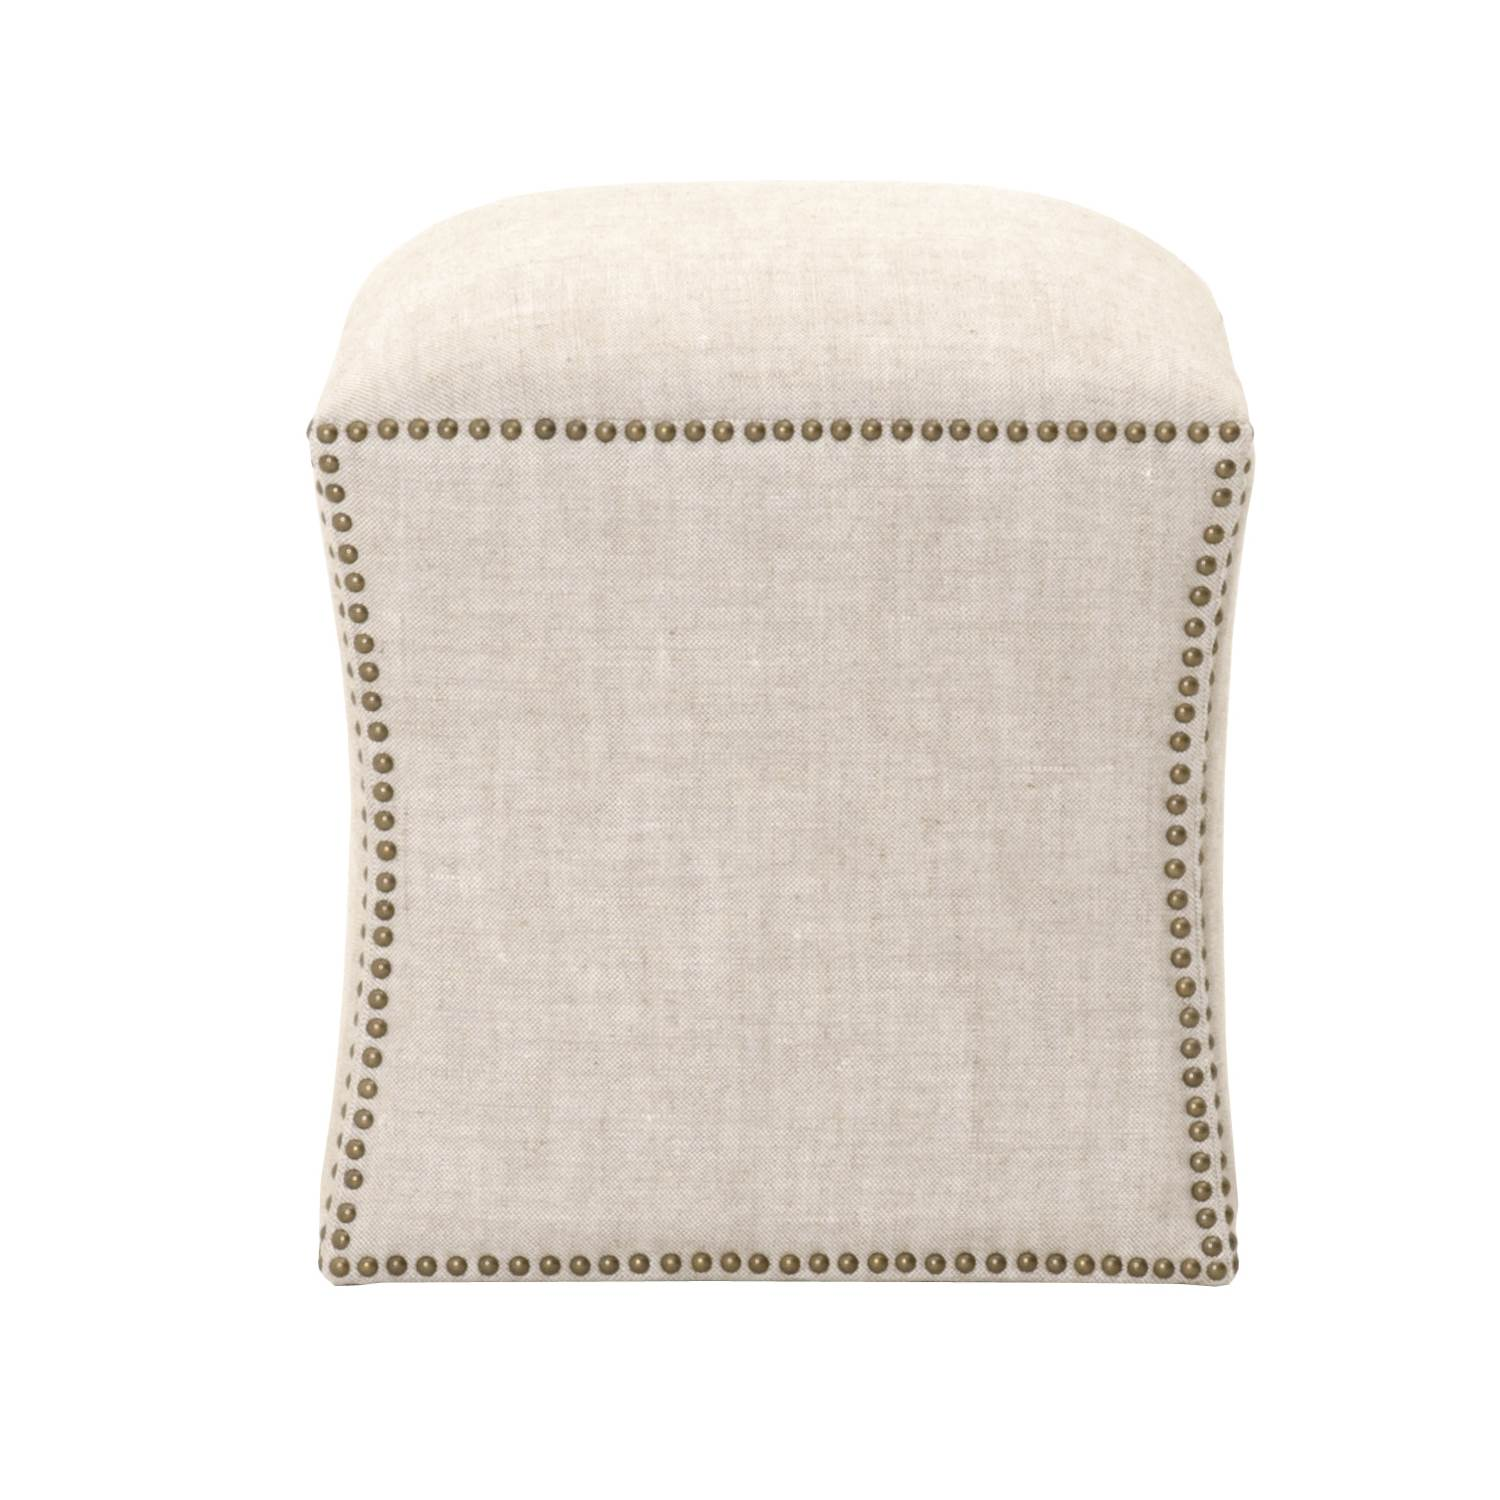 York Square Footstool - Bisque - 1